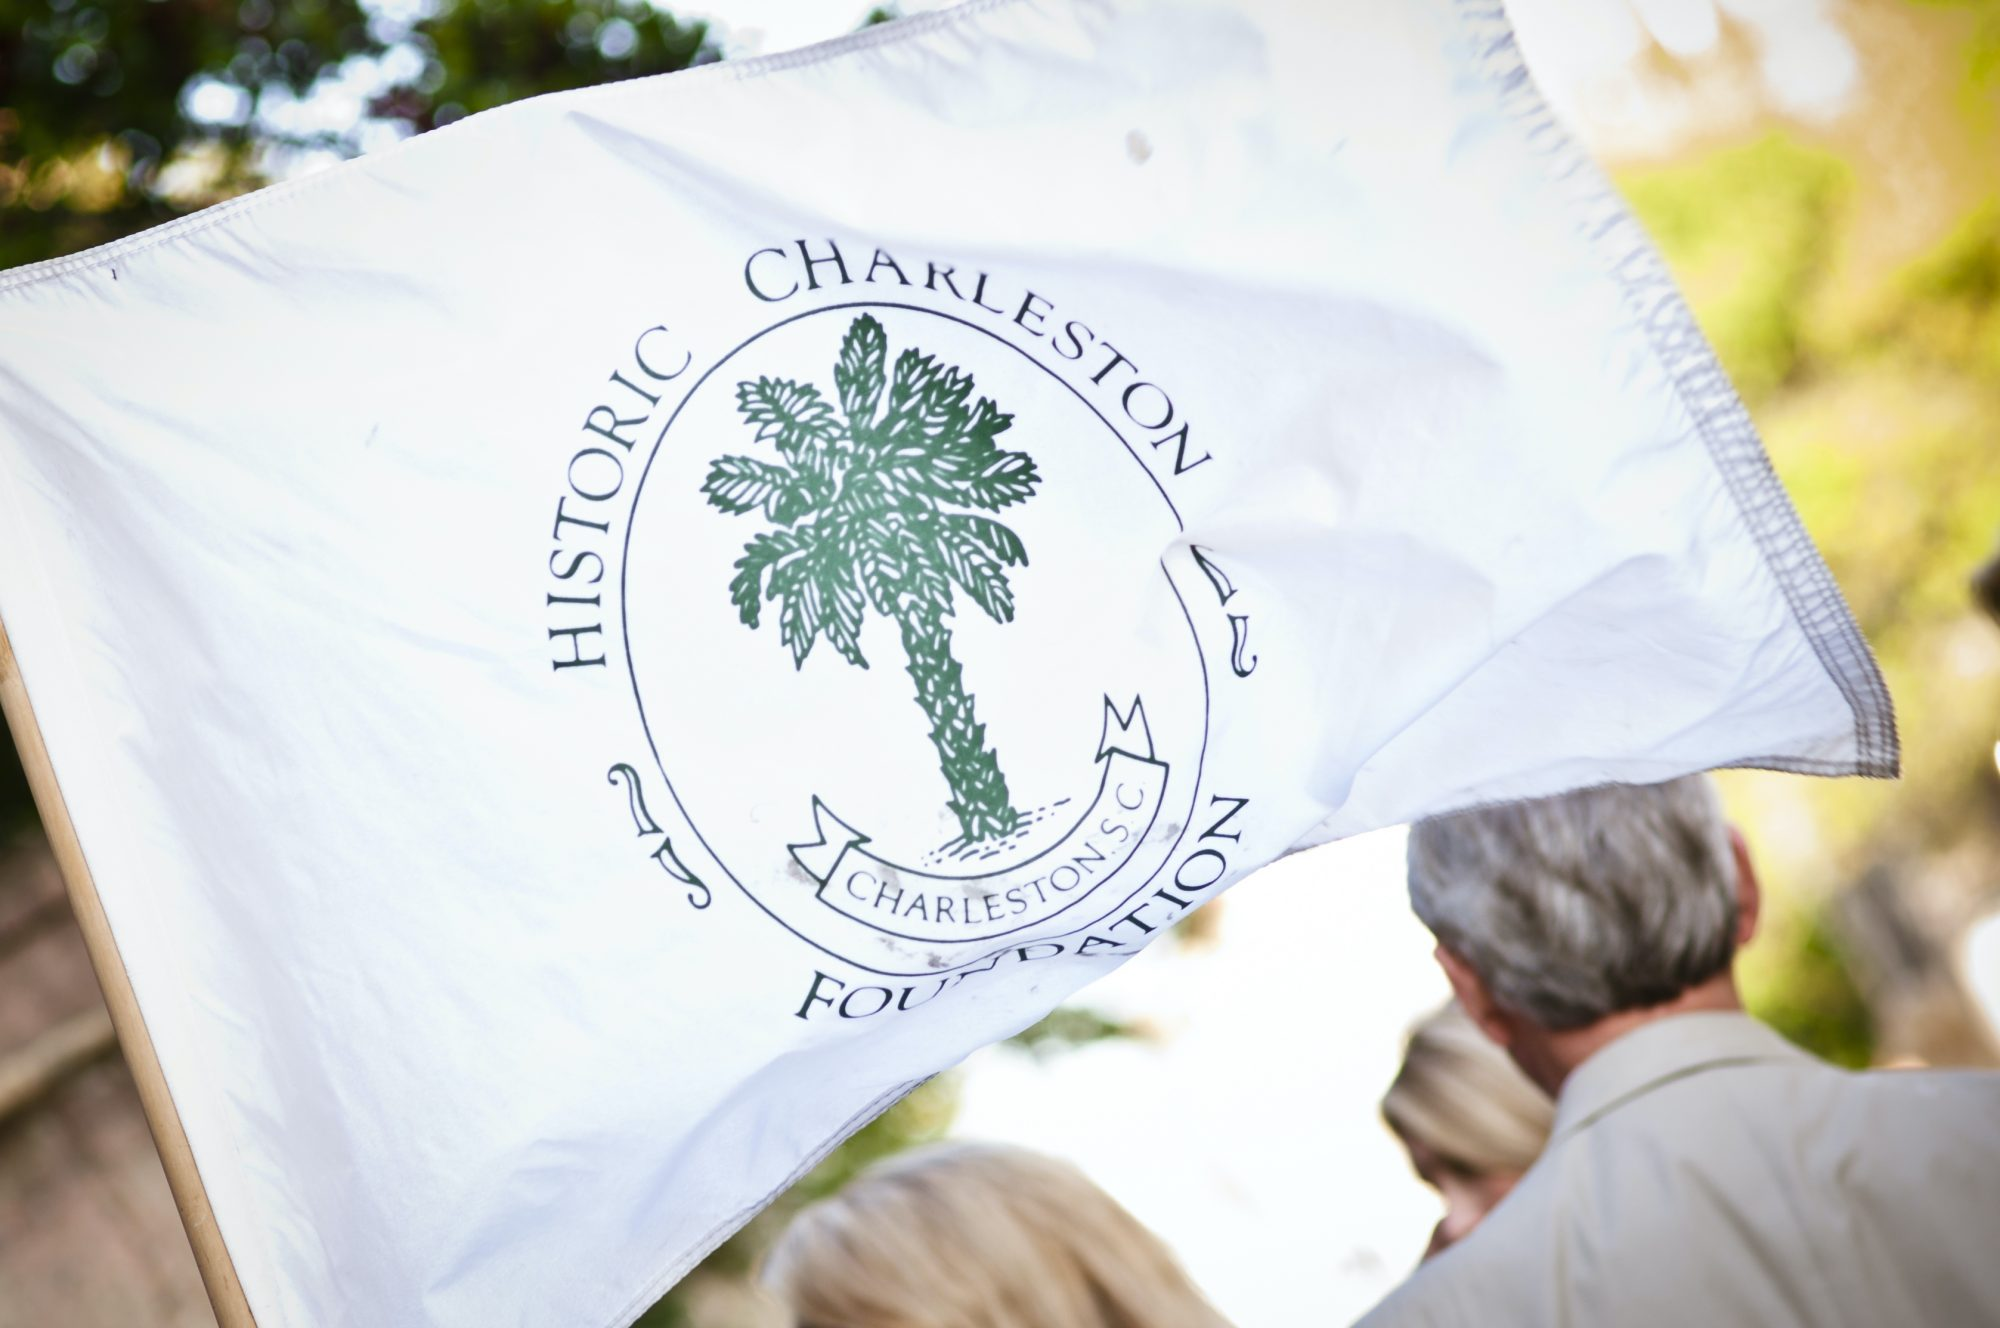 Historic Charleston Foundation Tours